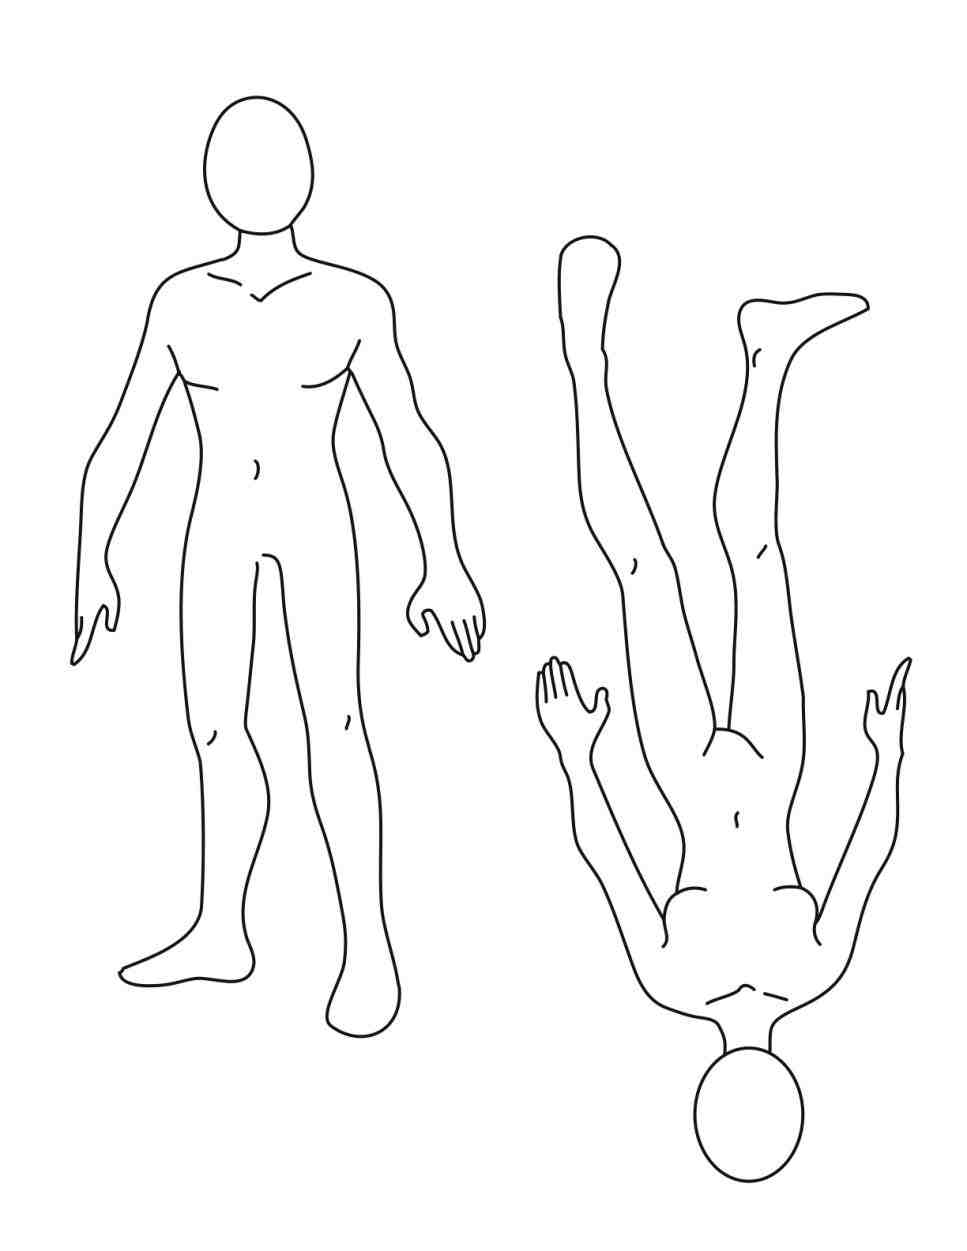 Female Body Outline Drawing At Getdrawings Free For Personal